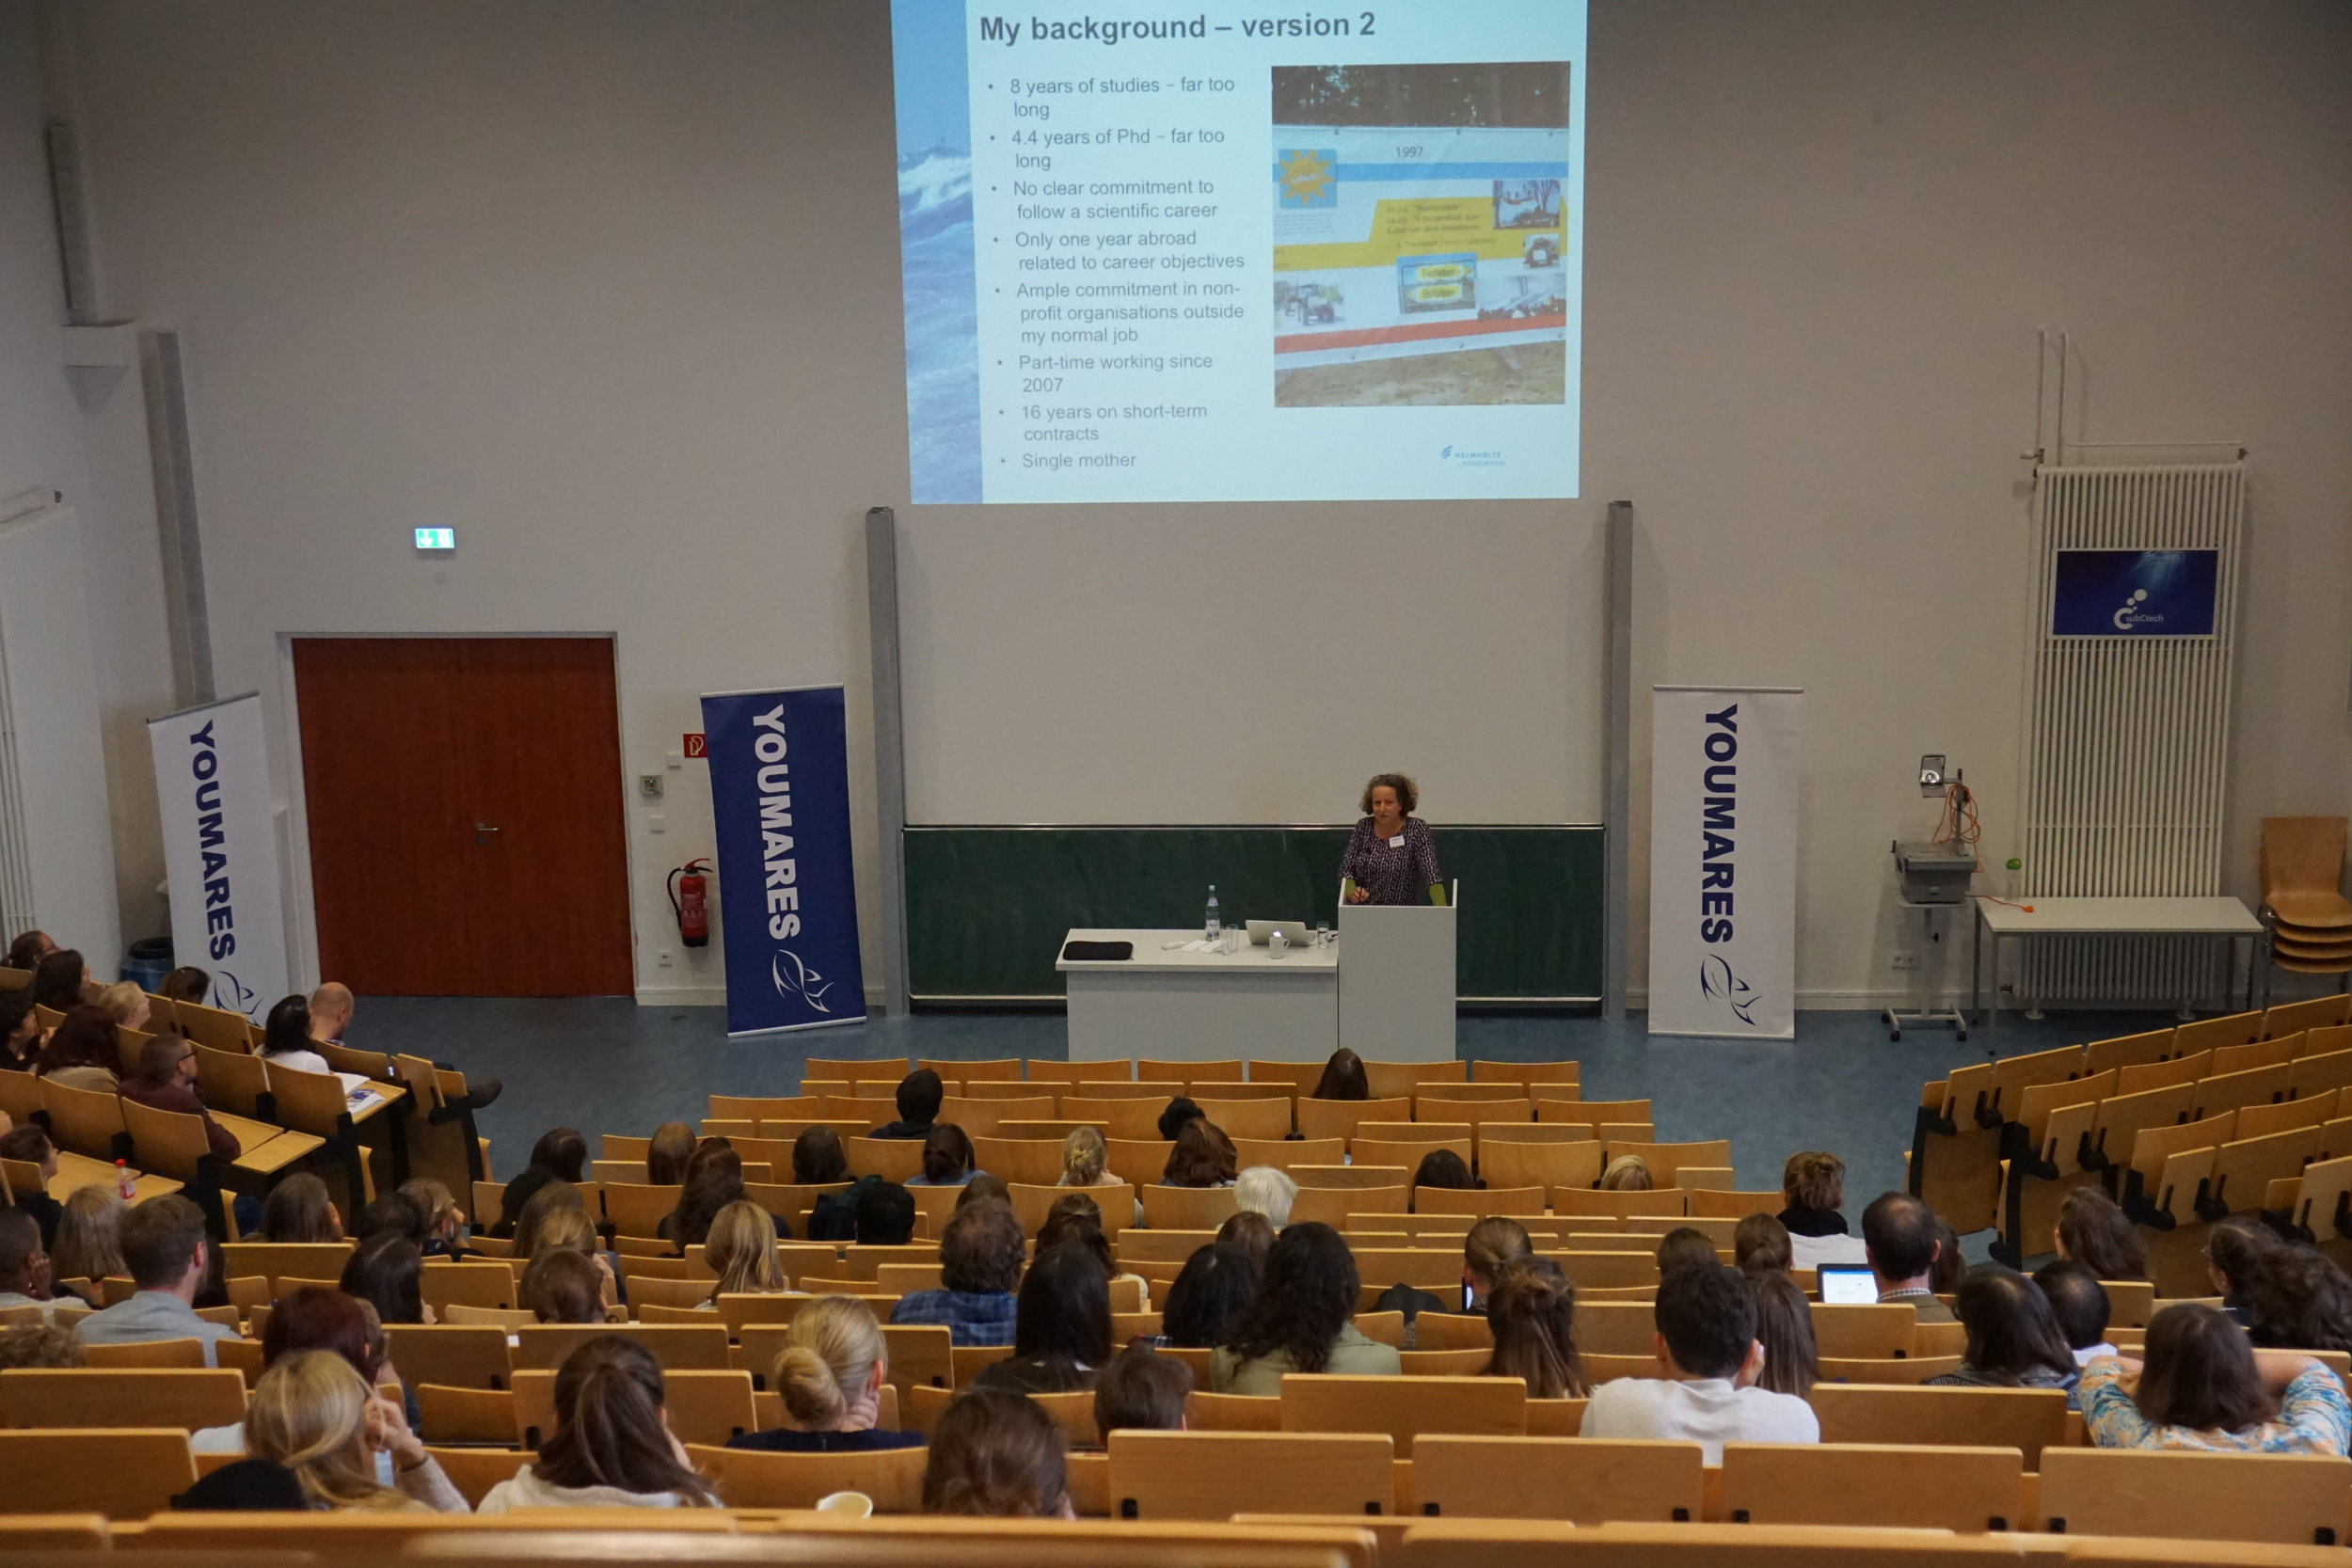 Dr Claudia Hanfland (AWI Bremerhaven) talking about her personal career development before presenting multiple career possibilities. Credit: Mara Weidung